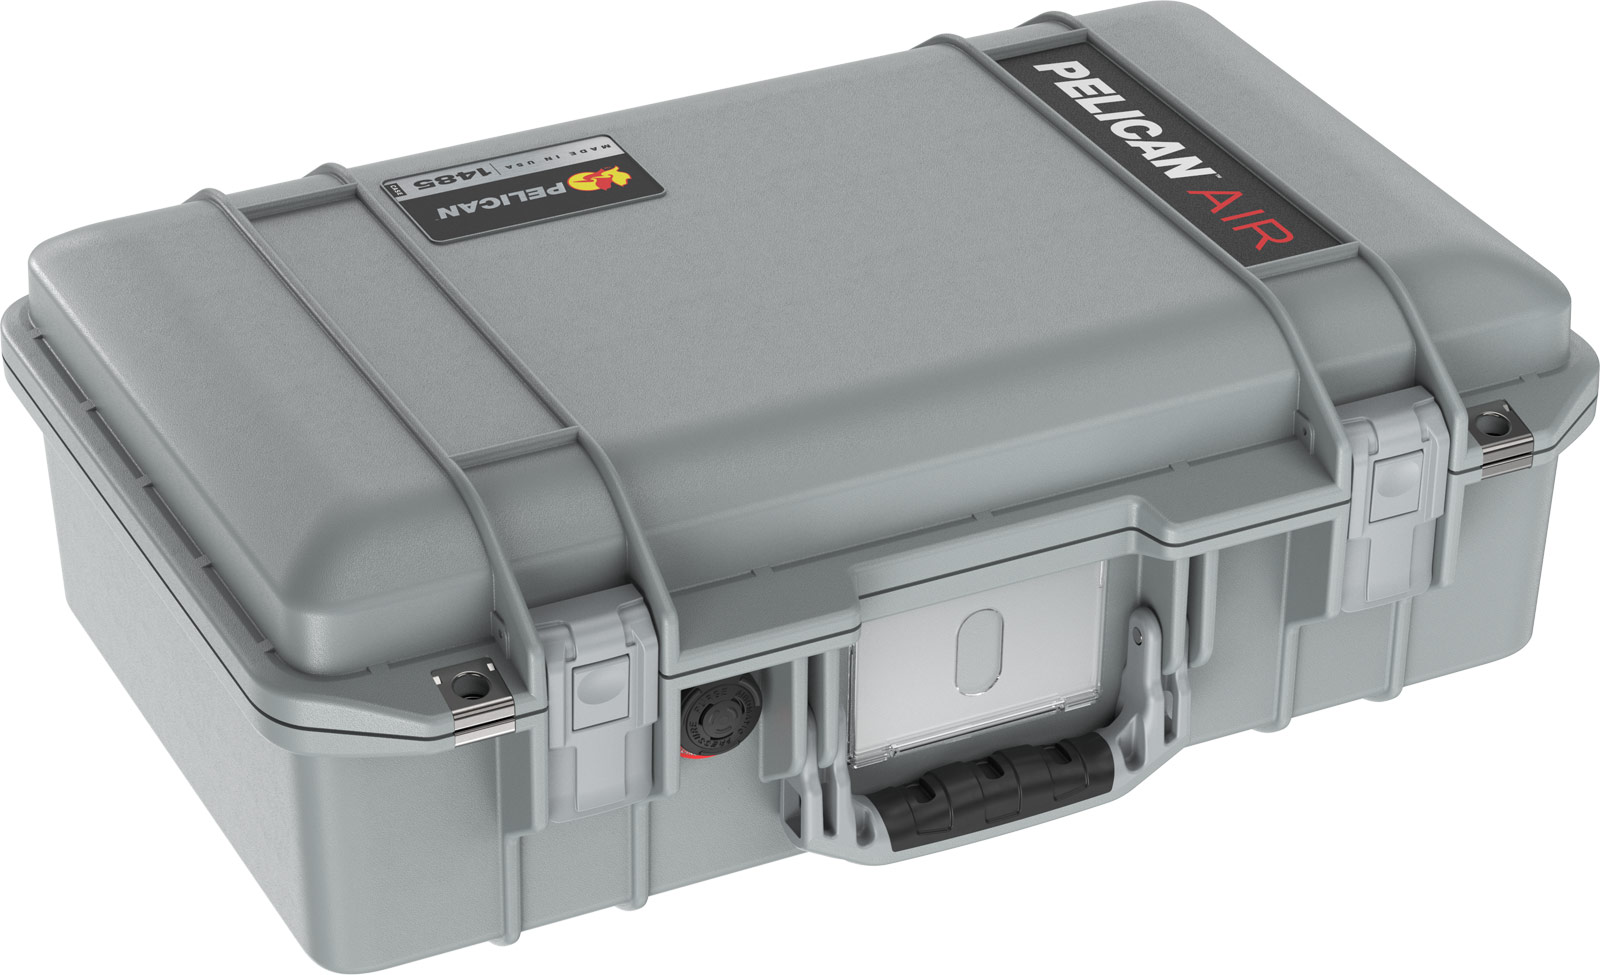 pelican air case watertight cases 1485